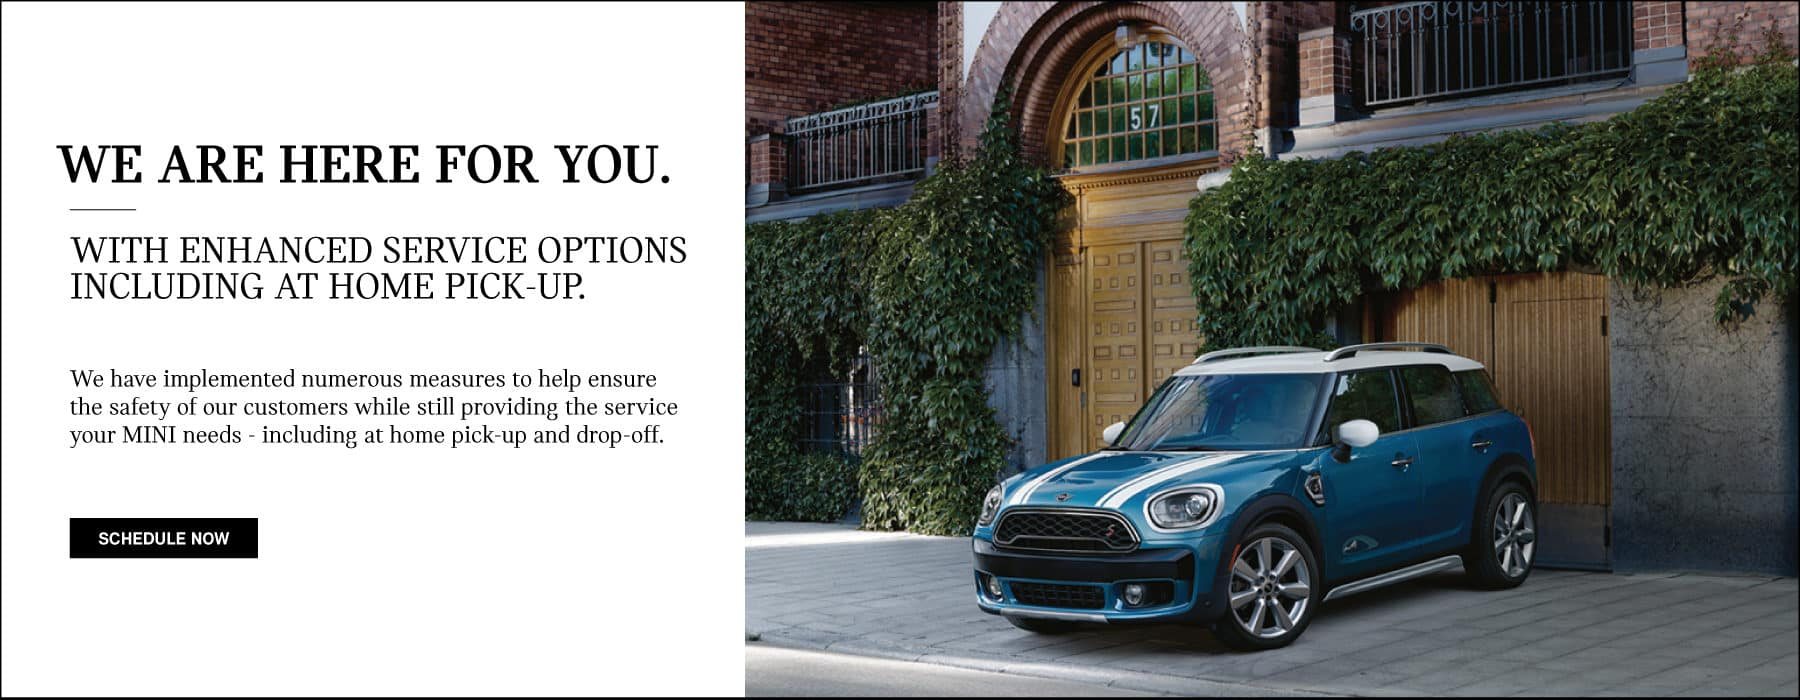 We are here for you. With Enhanced service optoins including at home pick-up. We have implemented numerous measures to help ensure the safety of our customers while still providing the service your MINI needs - including at home pick up and drop off. Schedule now button. Blue MINI Cooper S Countryman All4 parked in driveway.